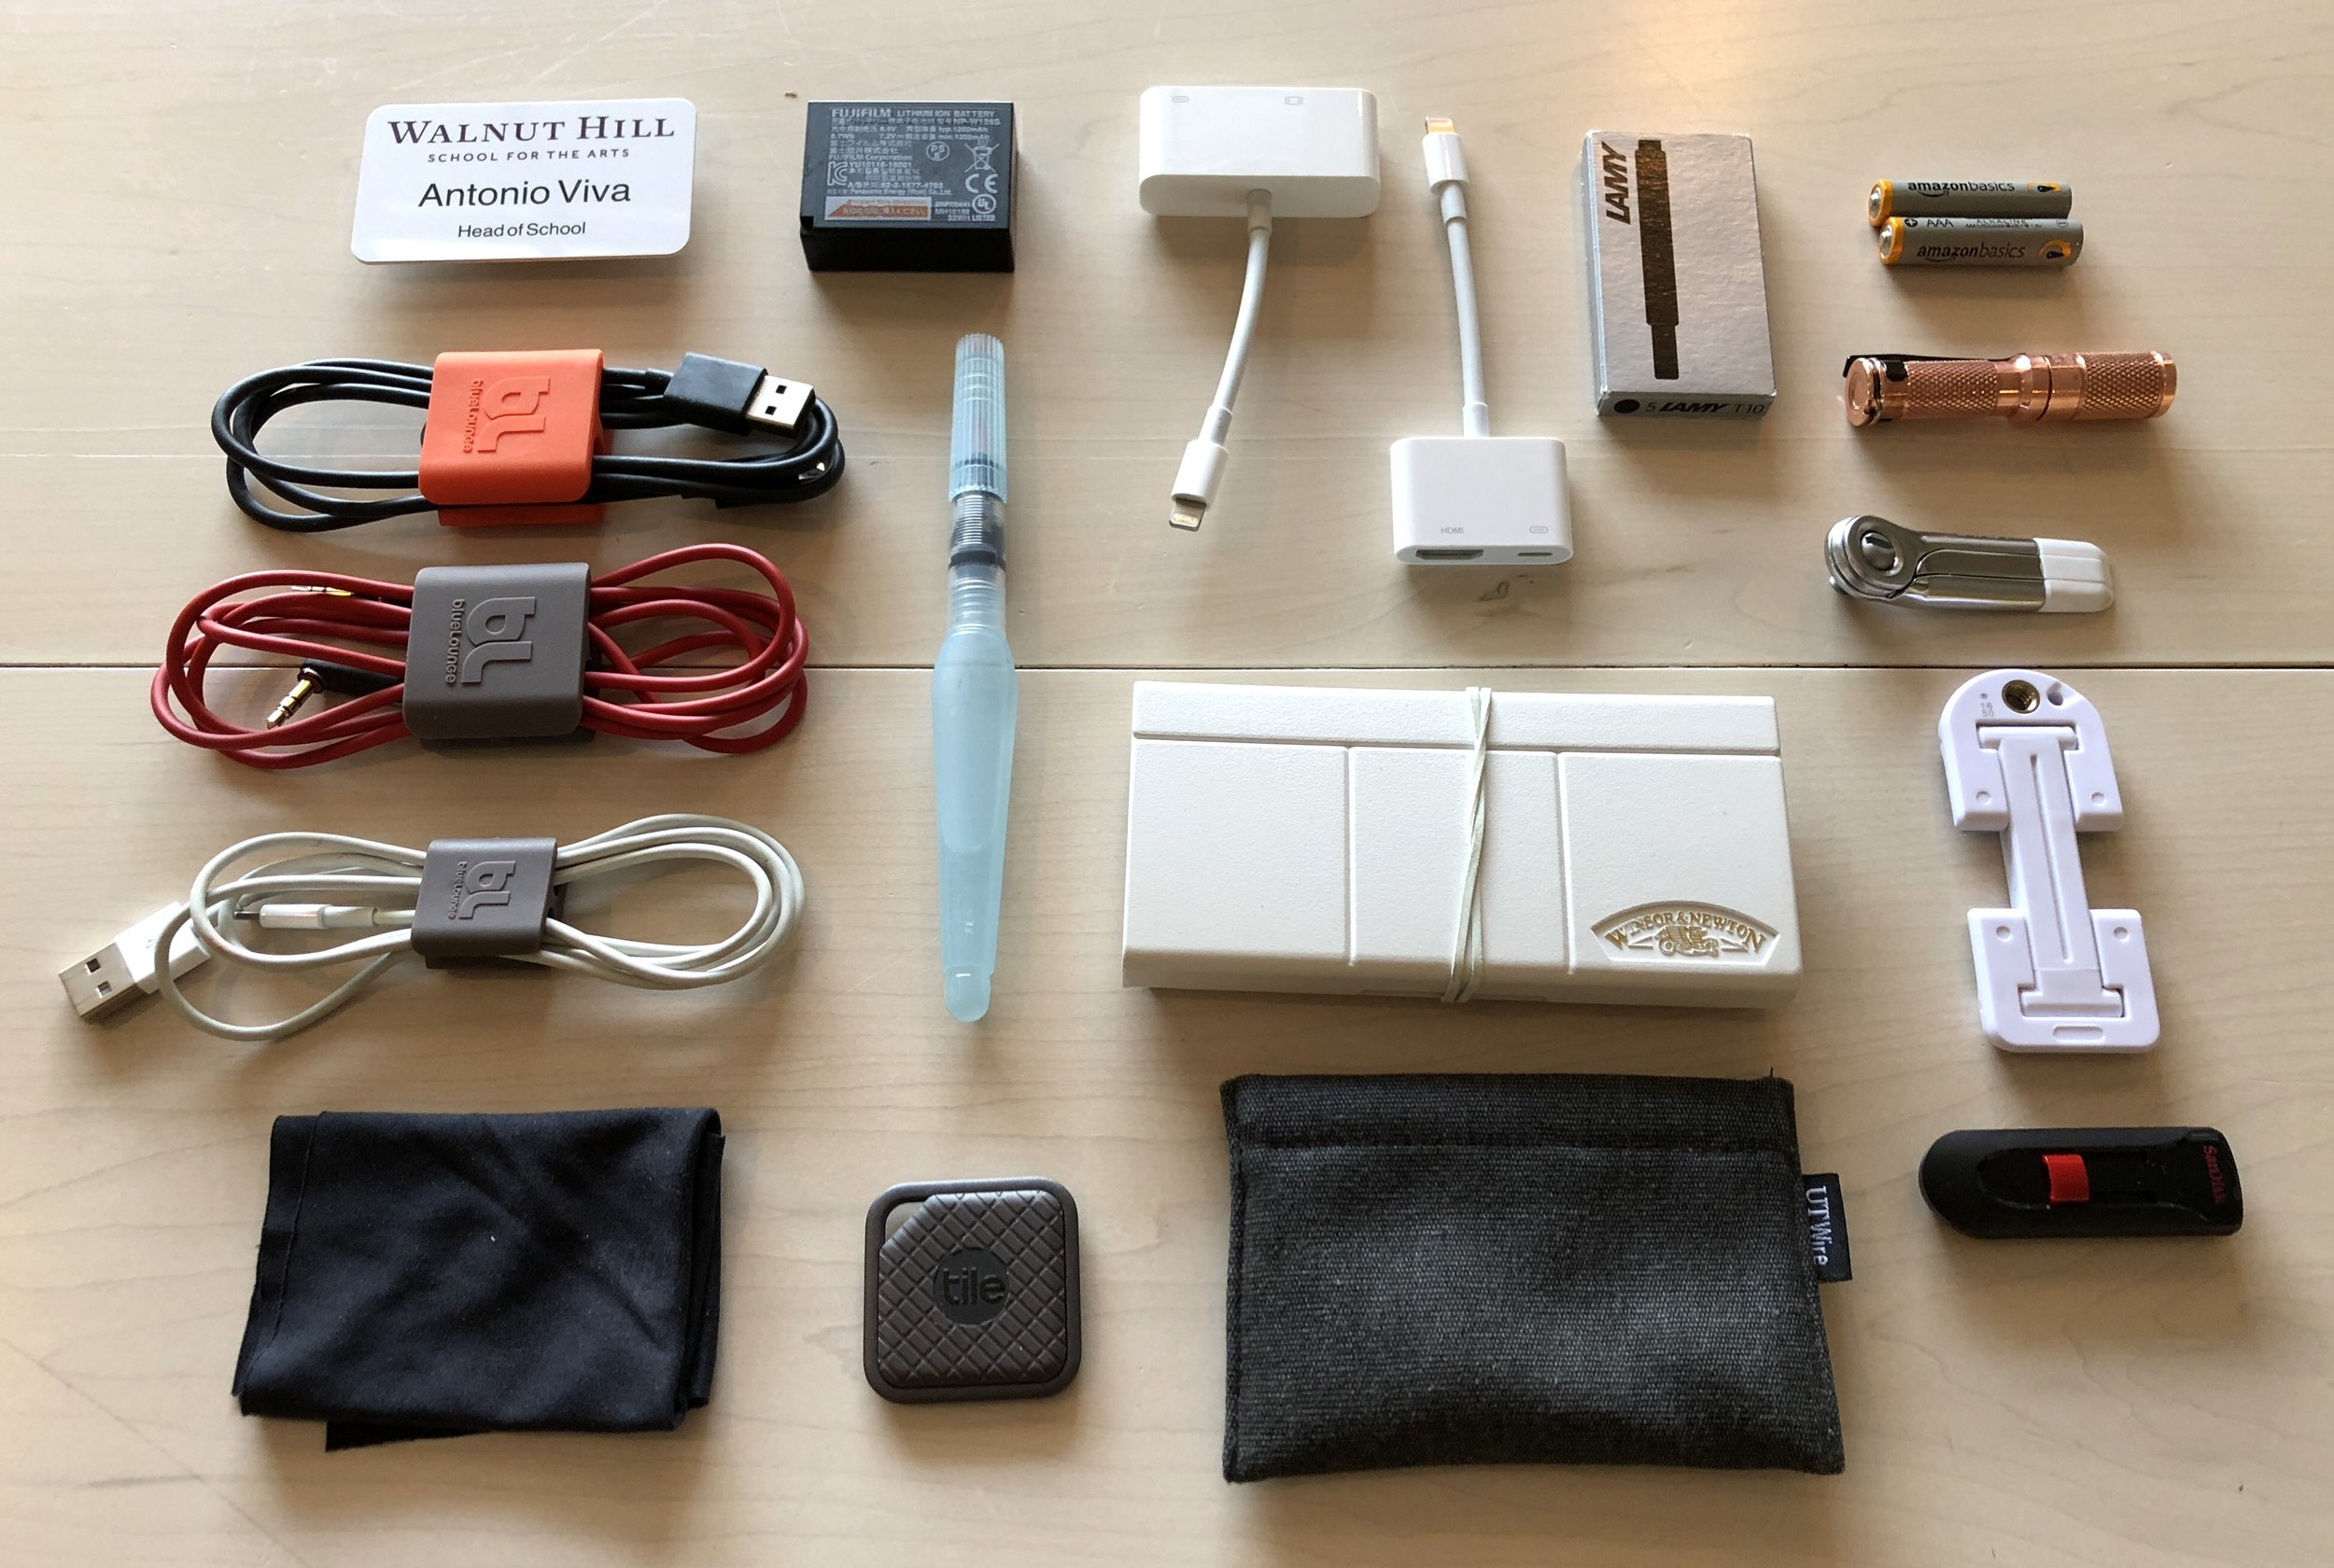 Cables, dongles, batteries, etc. are stored in the large black mesh pocket.